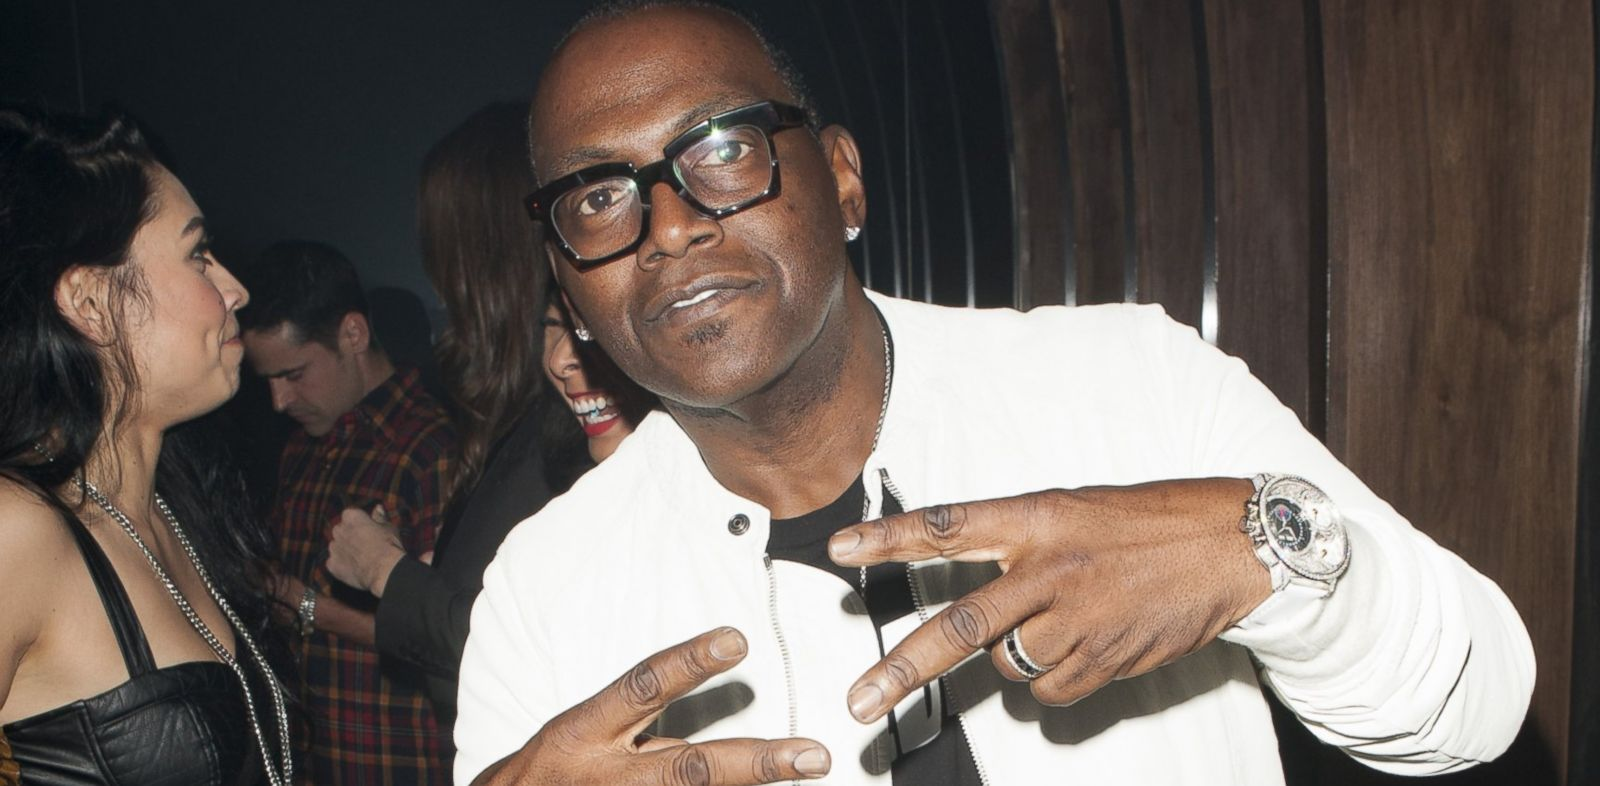 PHOTO: Randy Jackson attends the 1 OAK LA Grand Opening, Jan. 23, 2014, in West Hollywood, Calif.